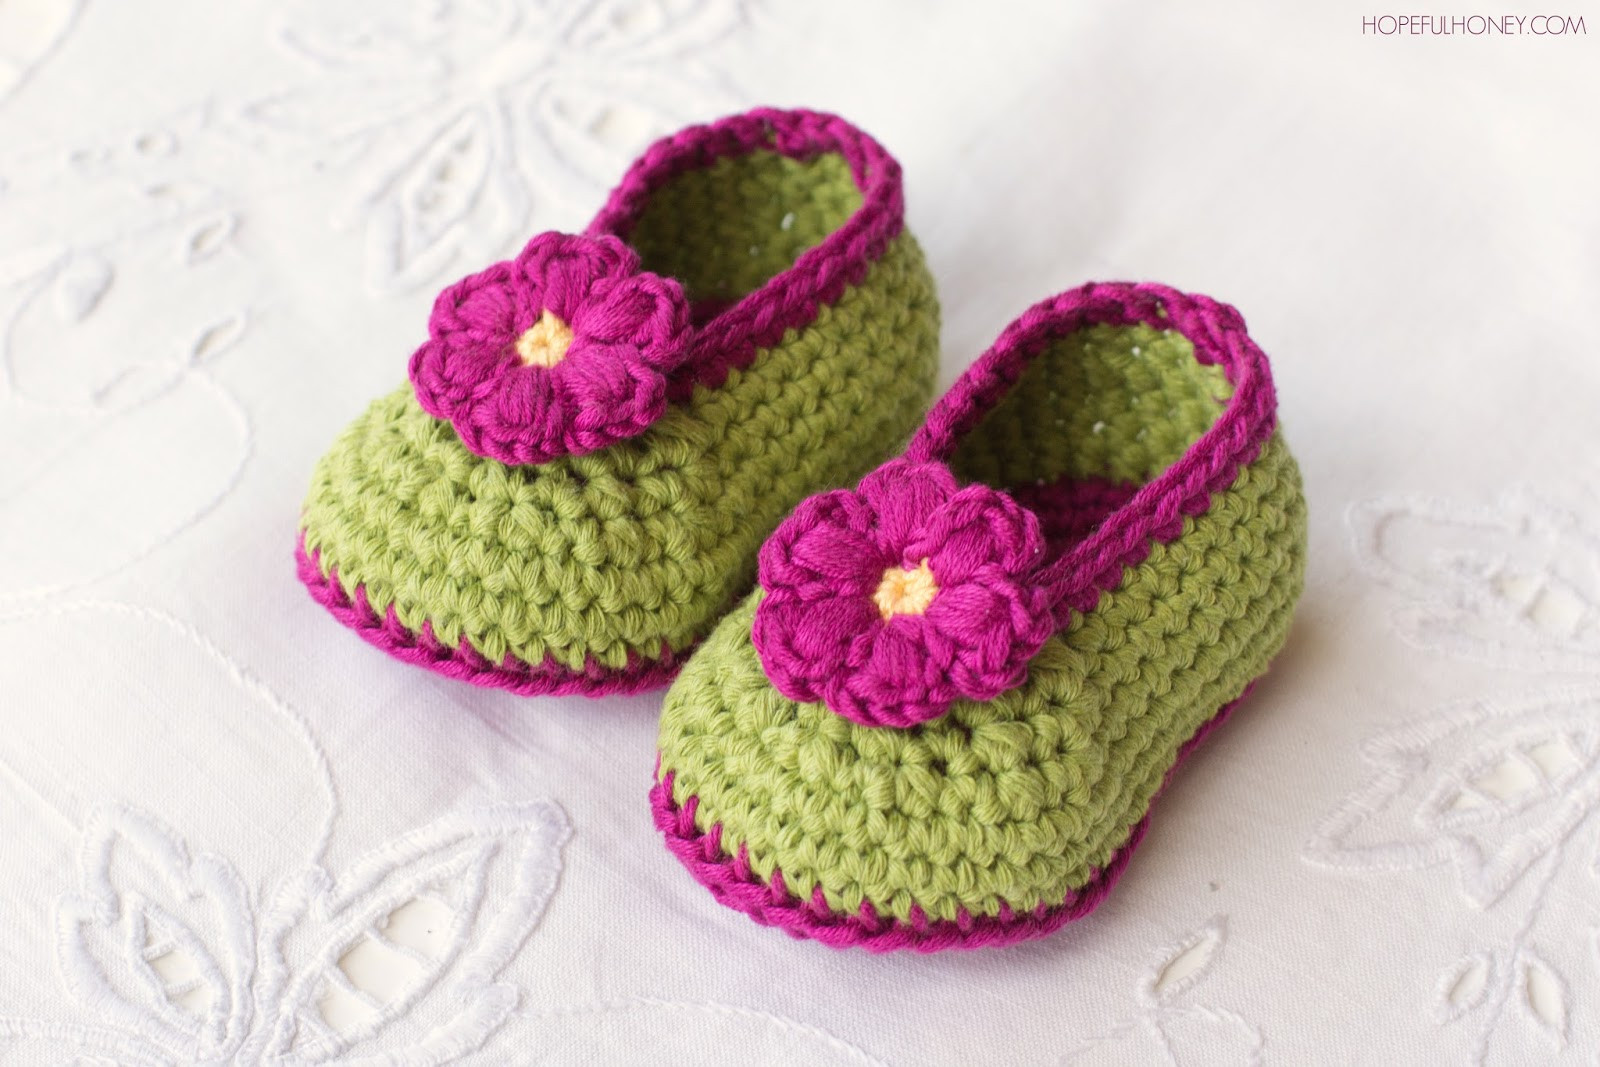 Baby Booties Crochet Pattern Fresh Ideas for Your Baby Booties Crochet Yishifashion Of Top 49 Pictures Baby Booties Crochet Pattern